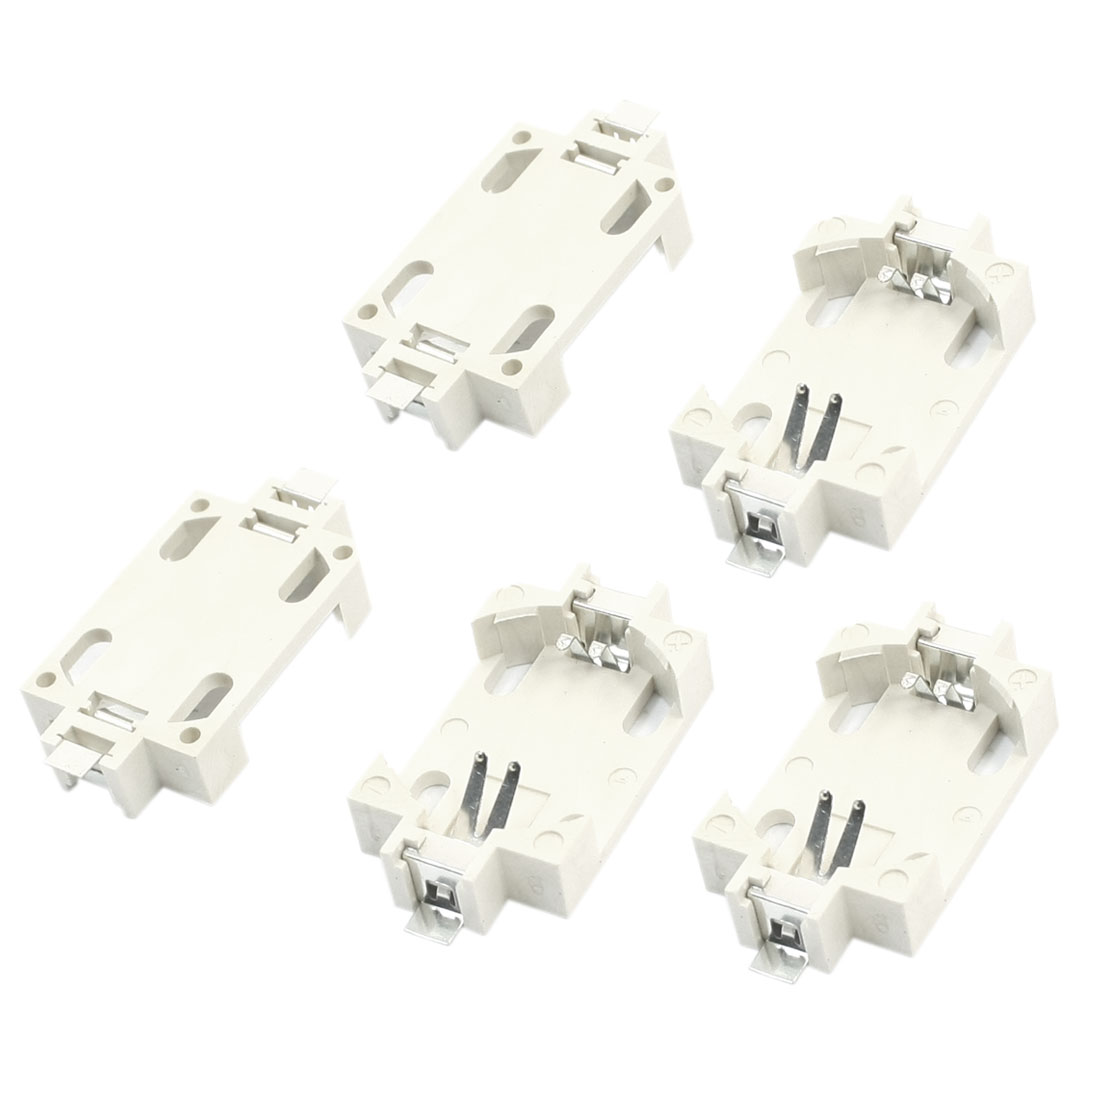 5 Pcs White Plastic Shell SMT SMD Type CR2032 Lithium Coin Cell Button Battery Holder Socket Case